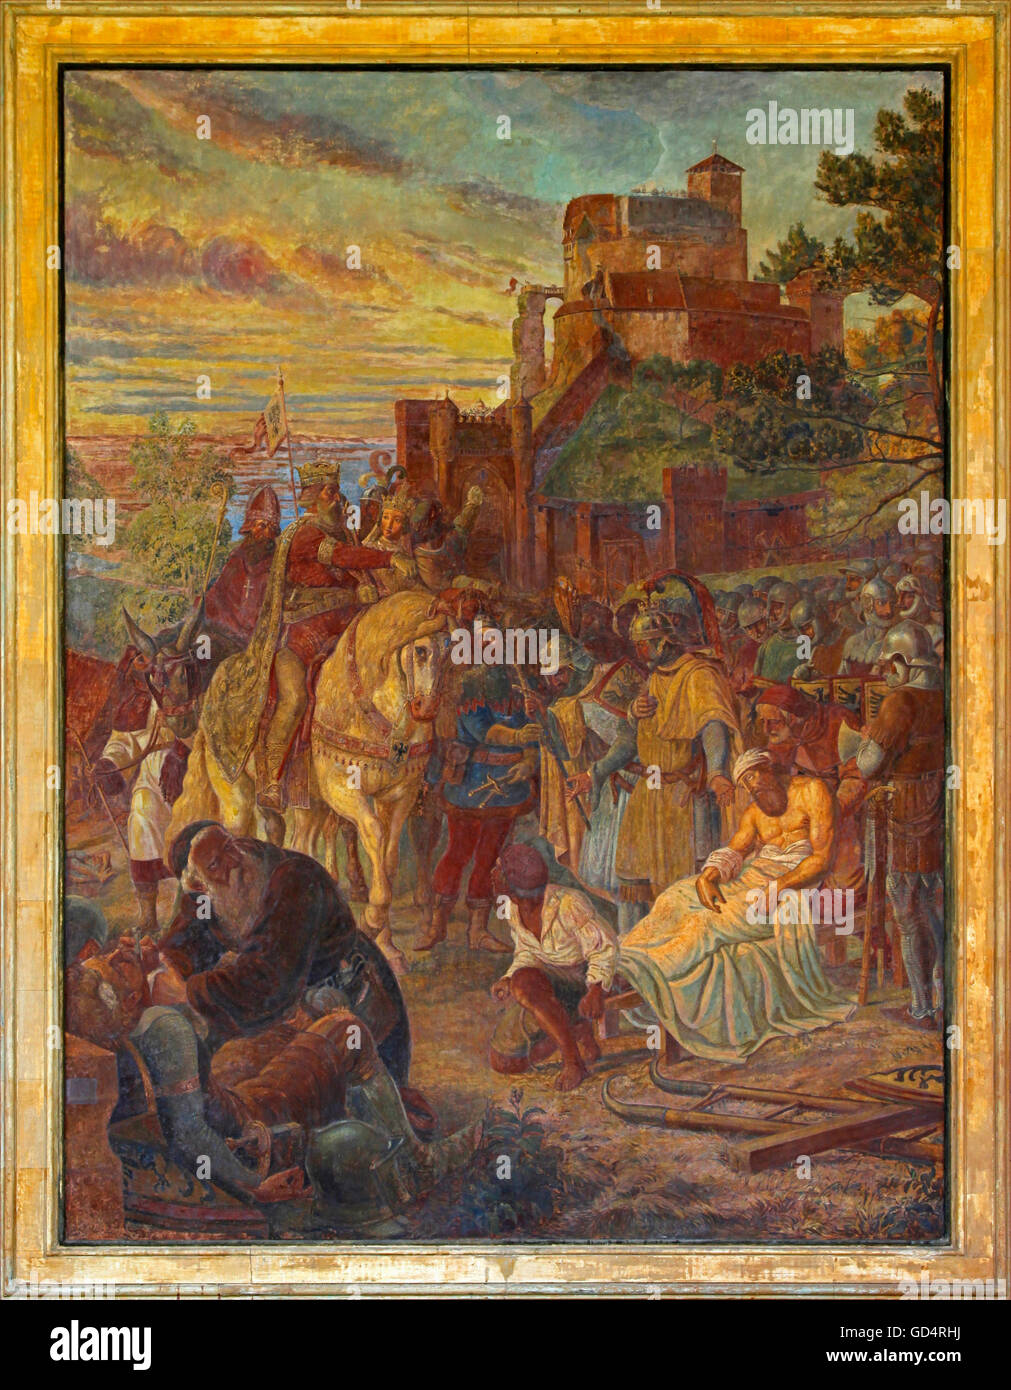 fine arts, wall paintings, painting 'Alt-Eberstein', knights festival with King Otto I during siege of Alt - Stock Image